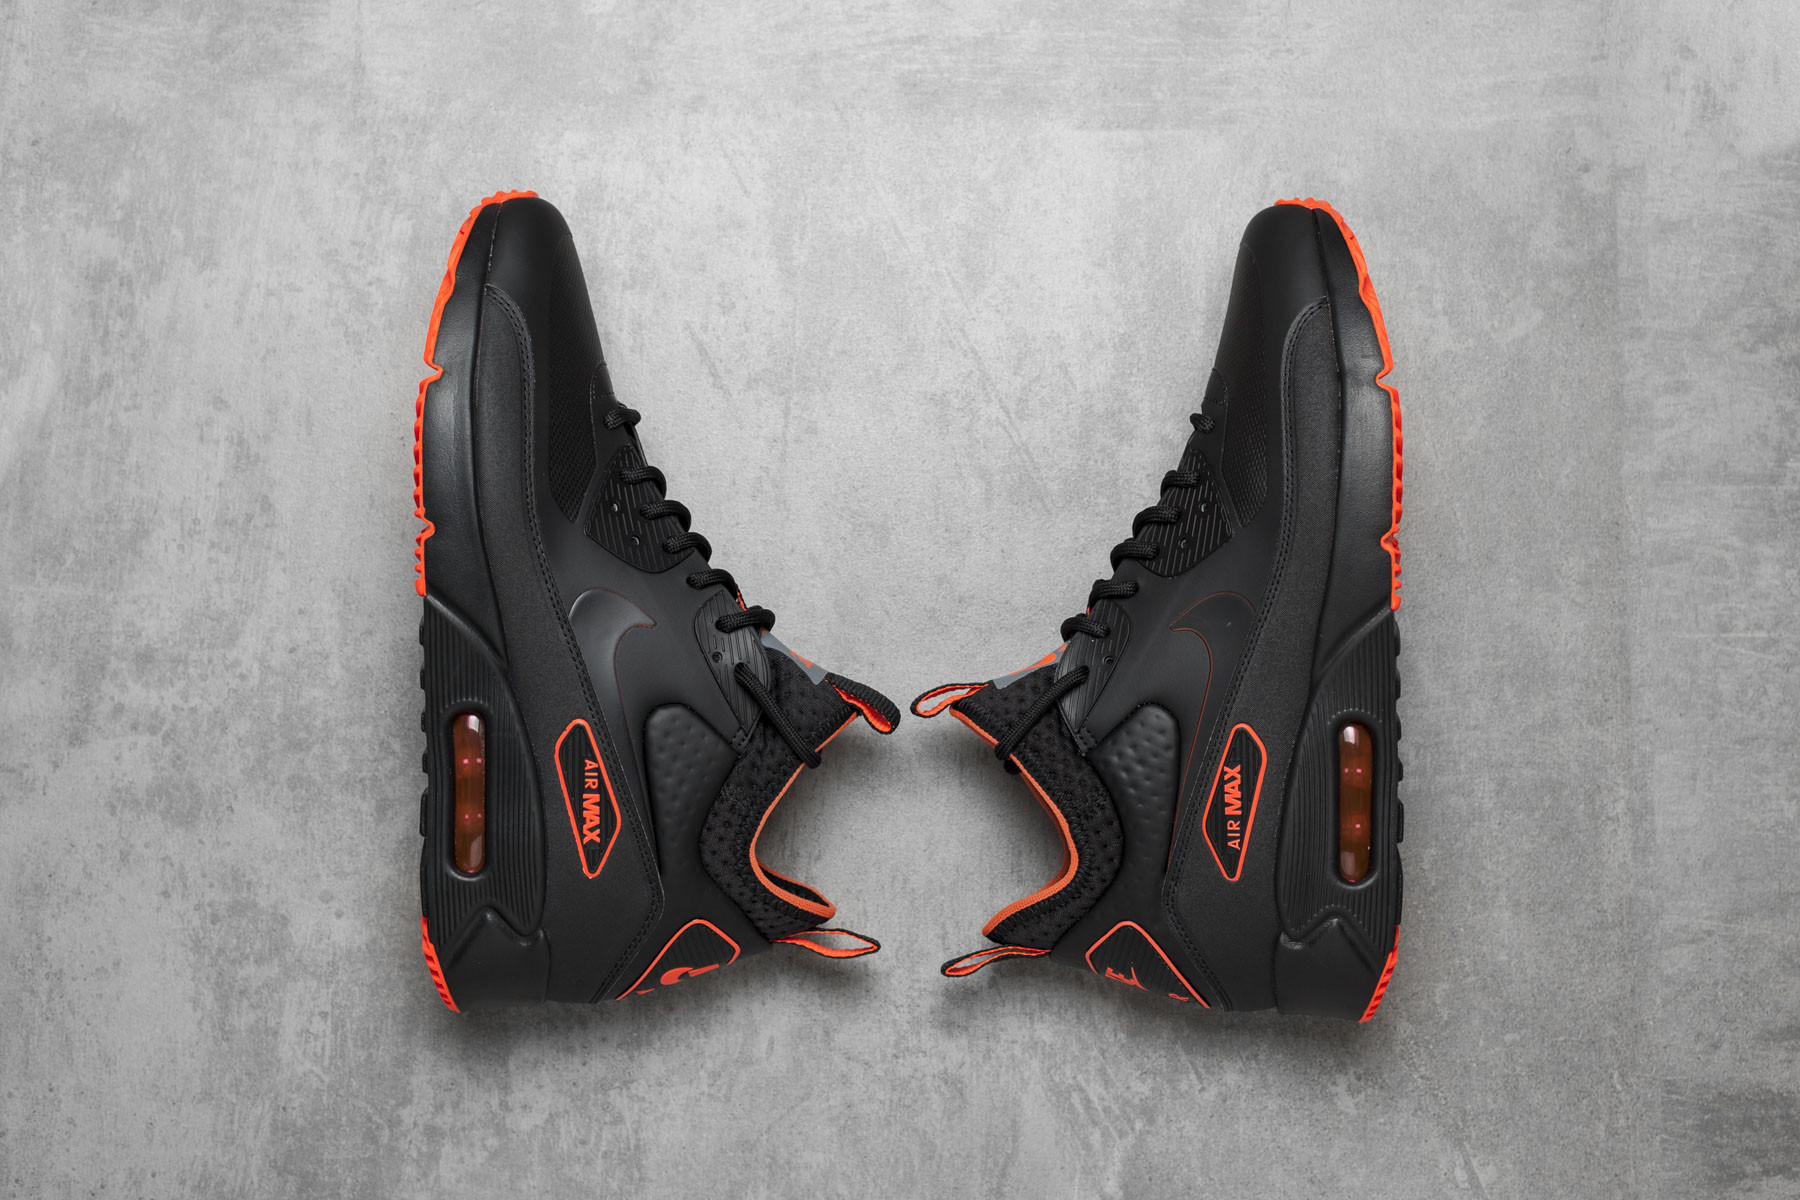 newest collection a496c 46221 Nike Air Max 90 Ultra Mid Winter SE - Sneakers | SNEAKER.NO ...